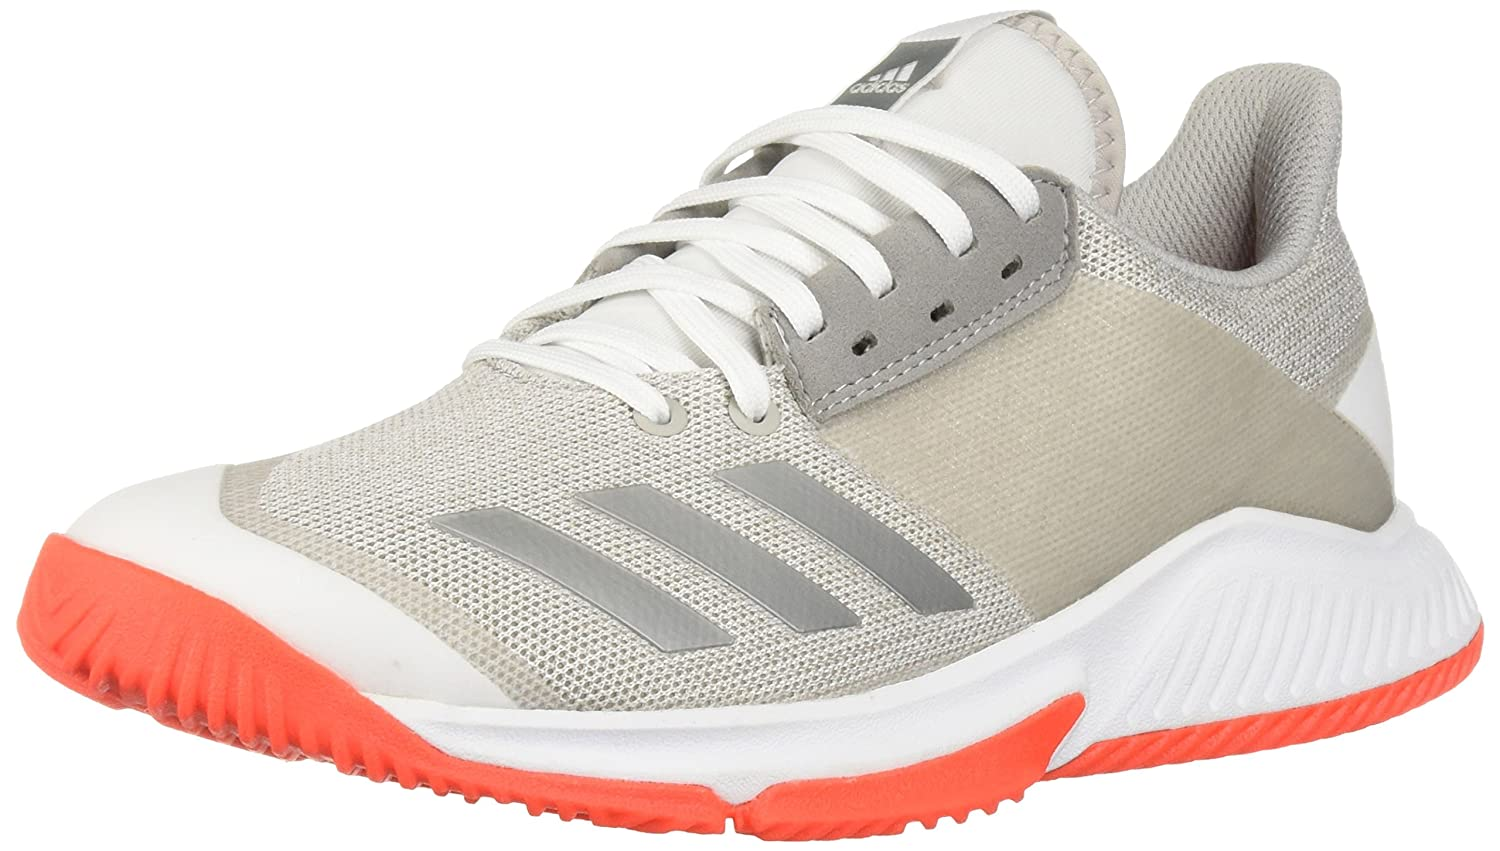 adidas Women's Crazyflight Team Volleyball Shoe B077X3R729 8 B(M) US|White/Silver Metallic/Grey